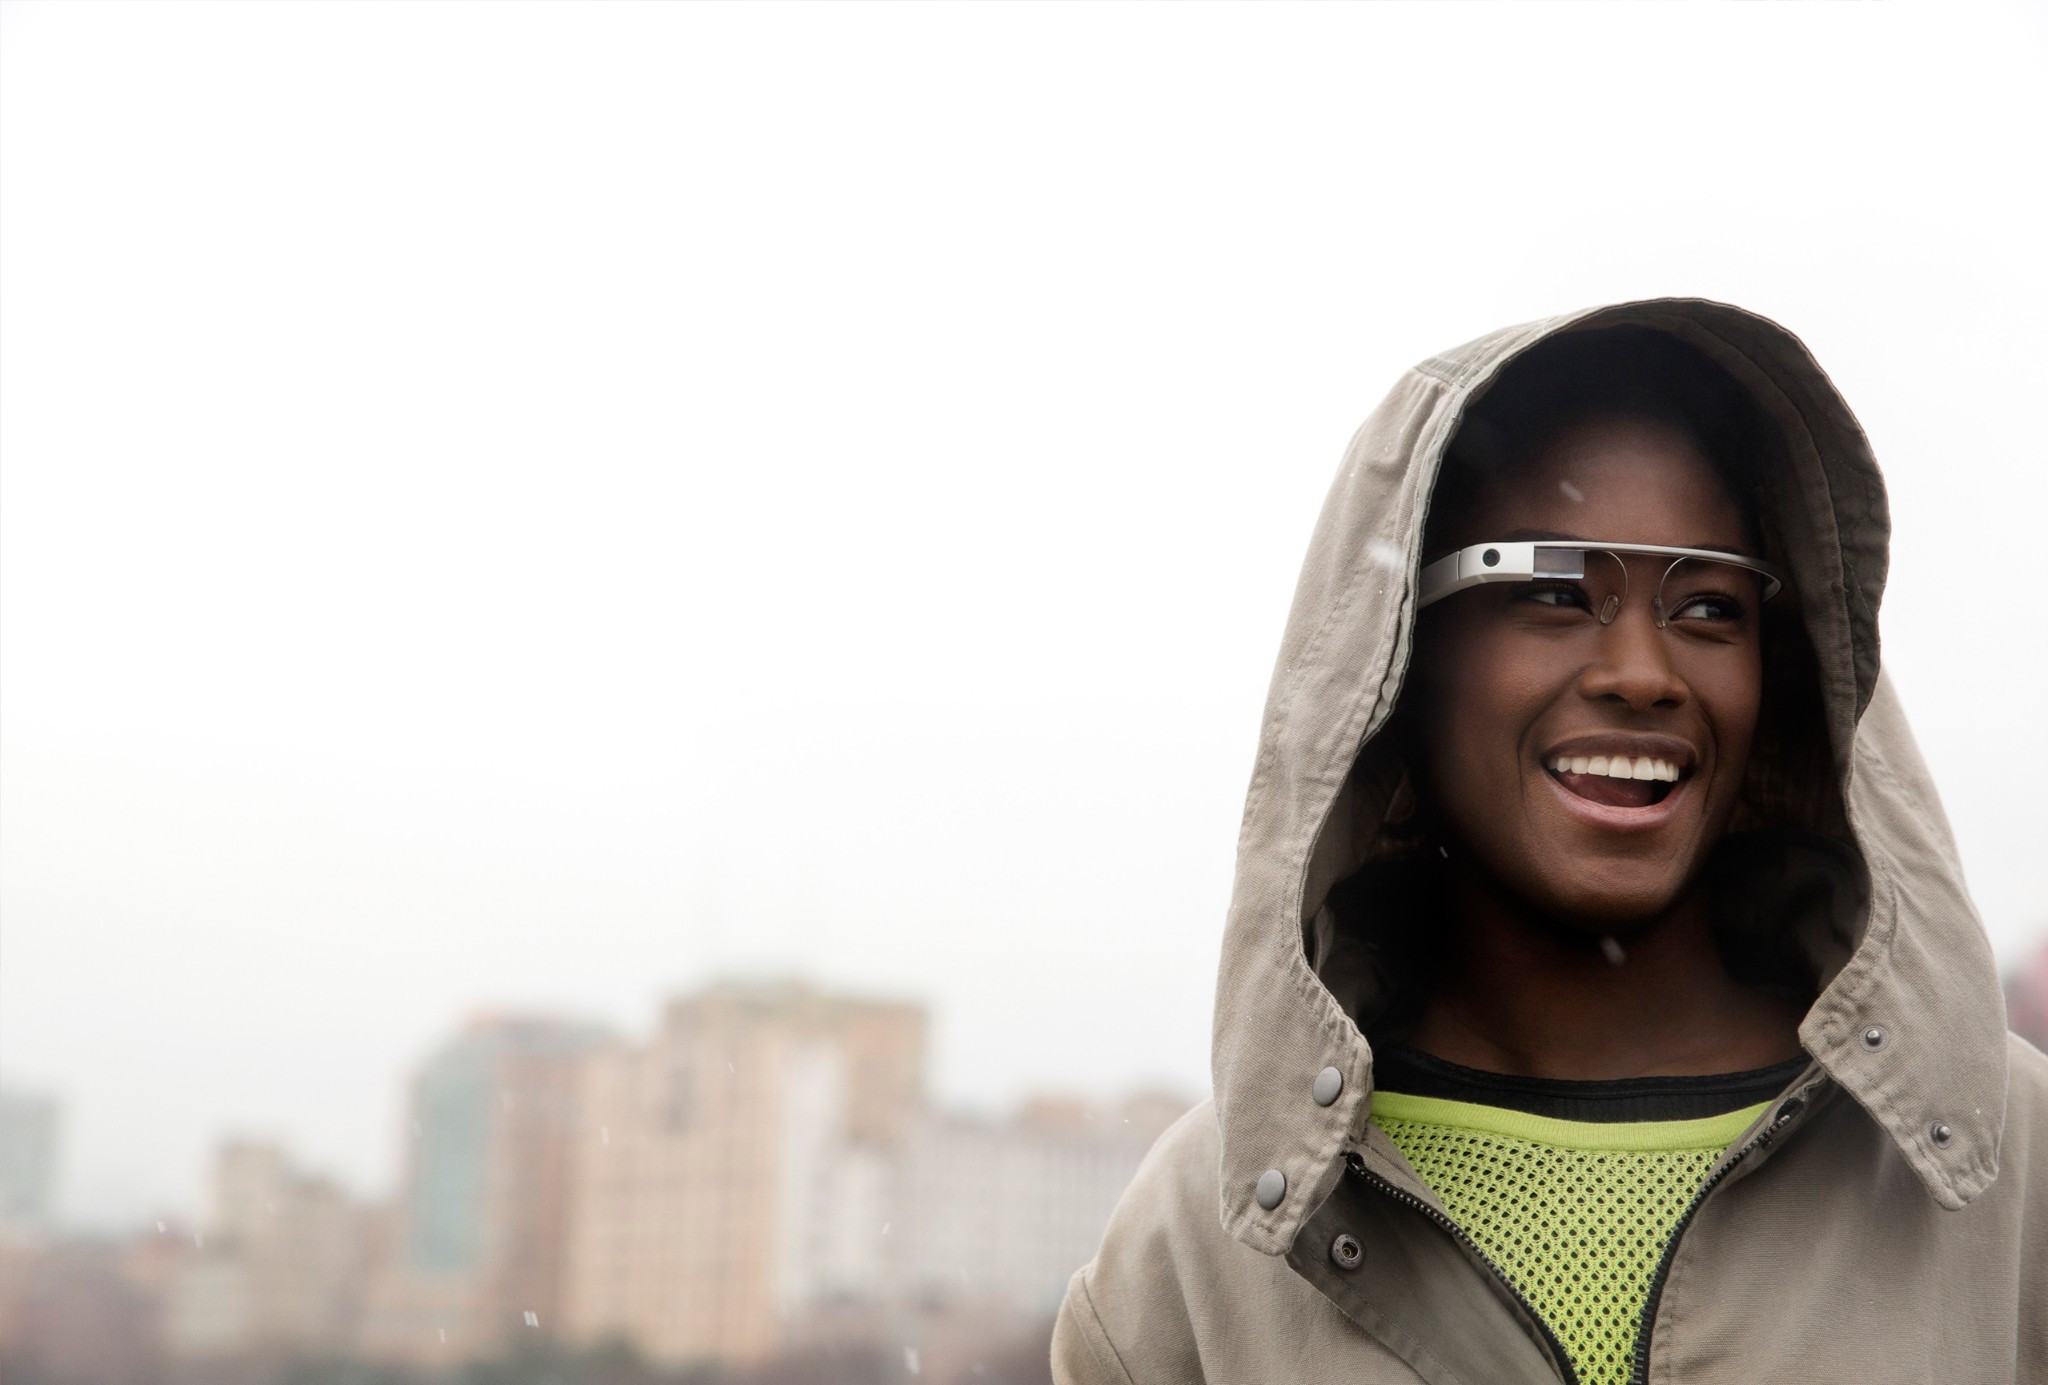 1361367660_google-releases-project-glass-video-capture-and-details-expands-pre-orders-6.jpg